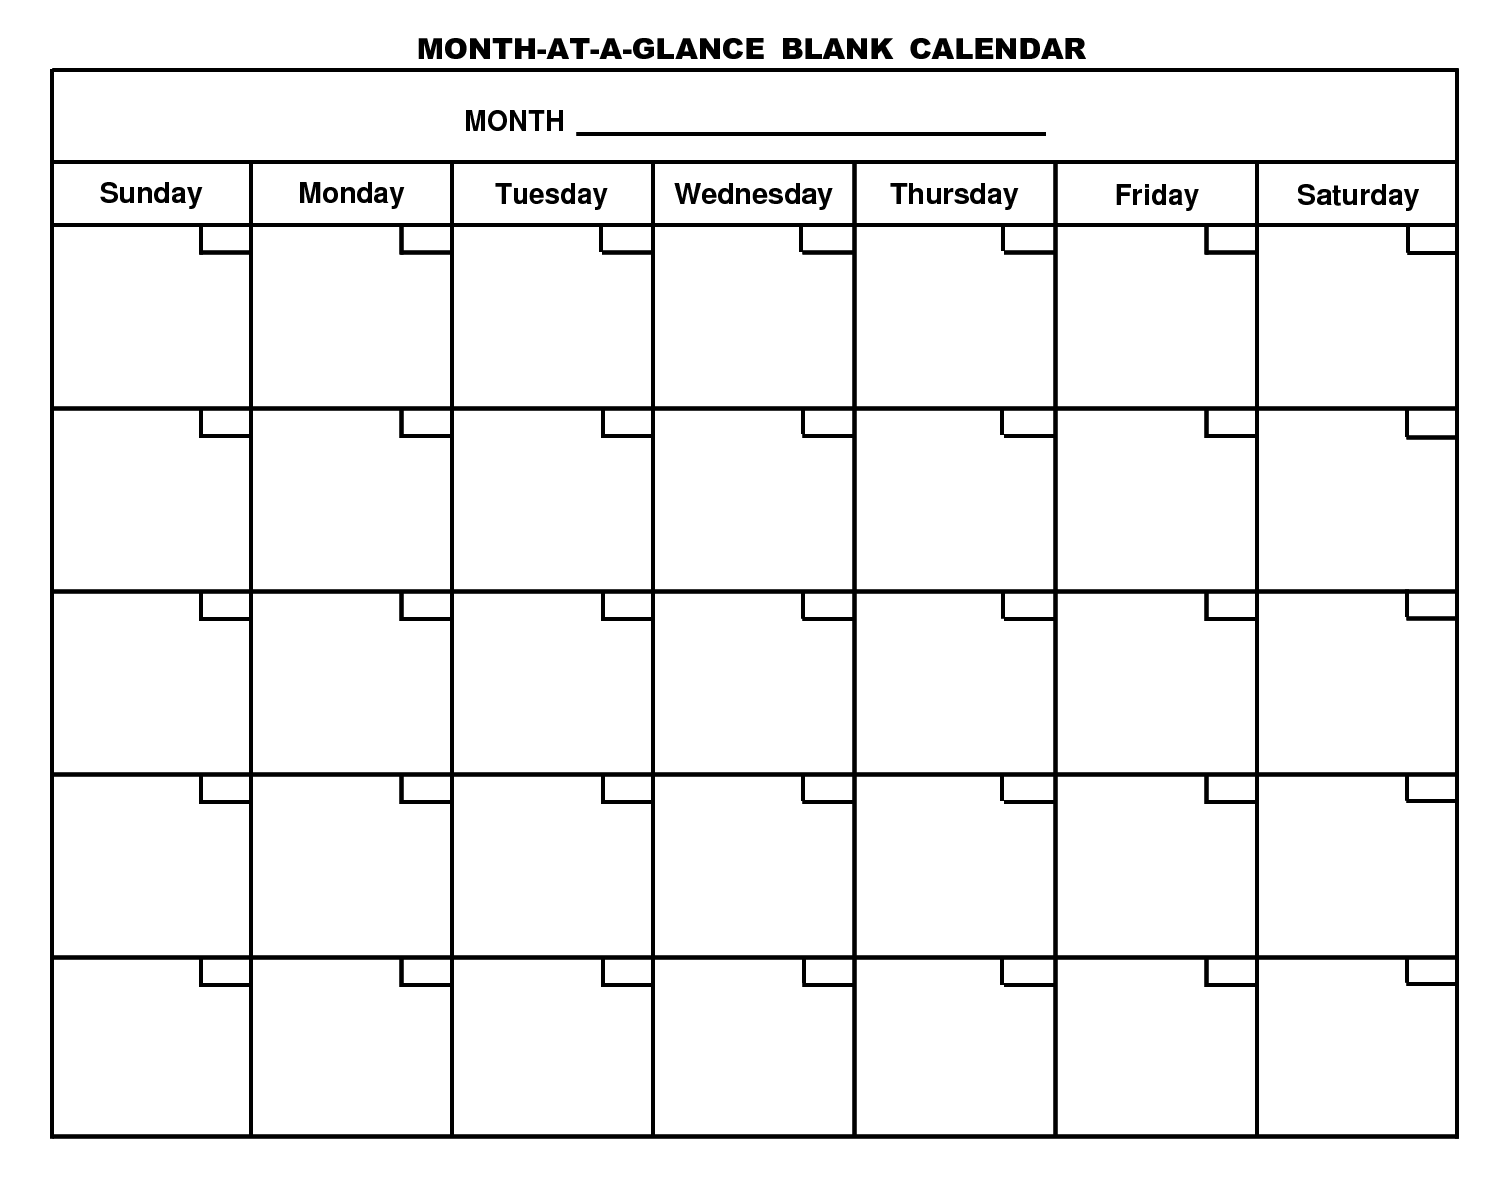 5 Images of Blank Month At A Glance Printable Calendar